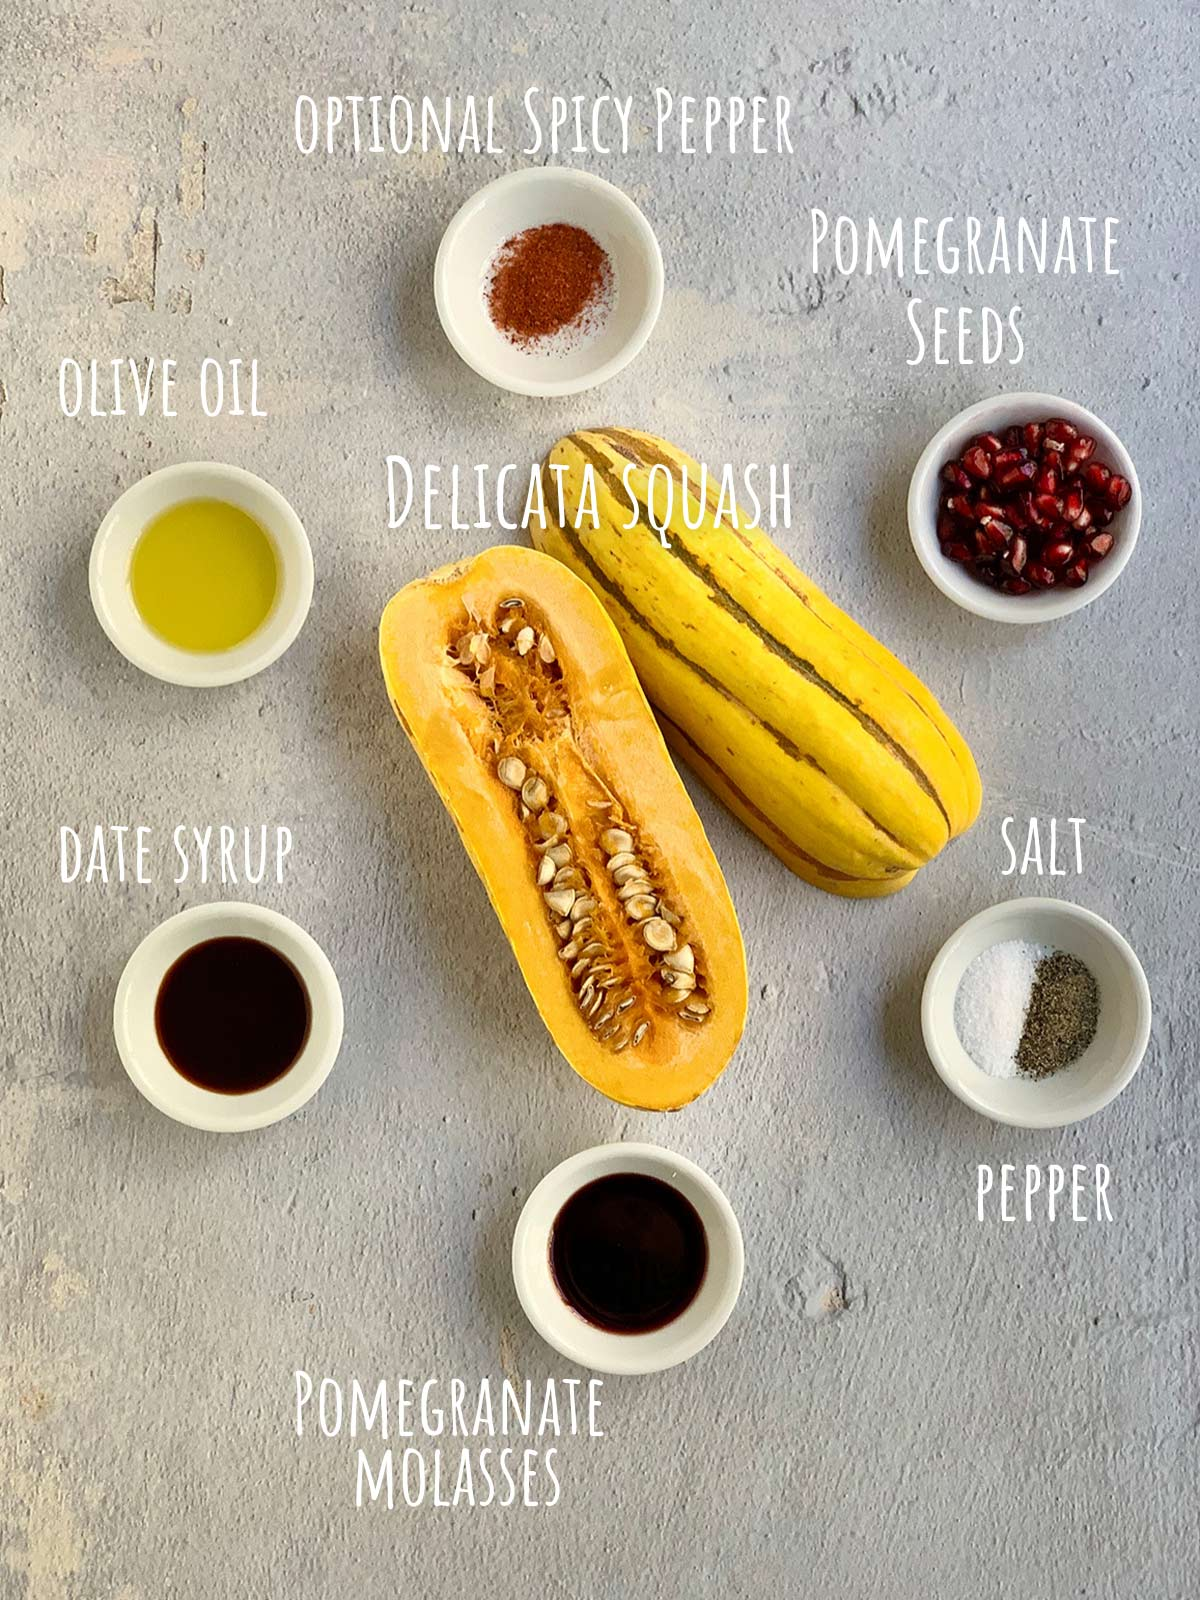 ingredients for recipe including a cut open delicata squash